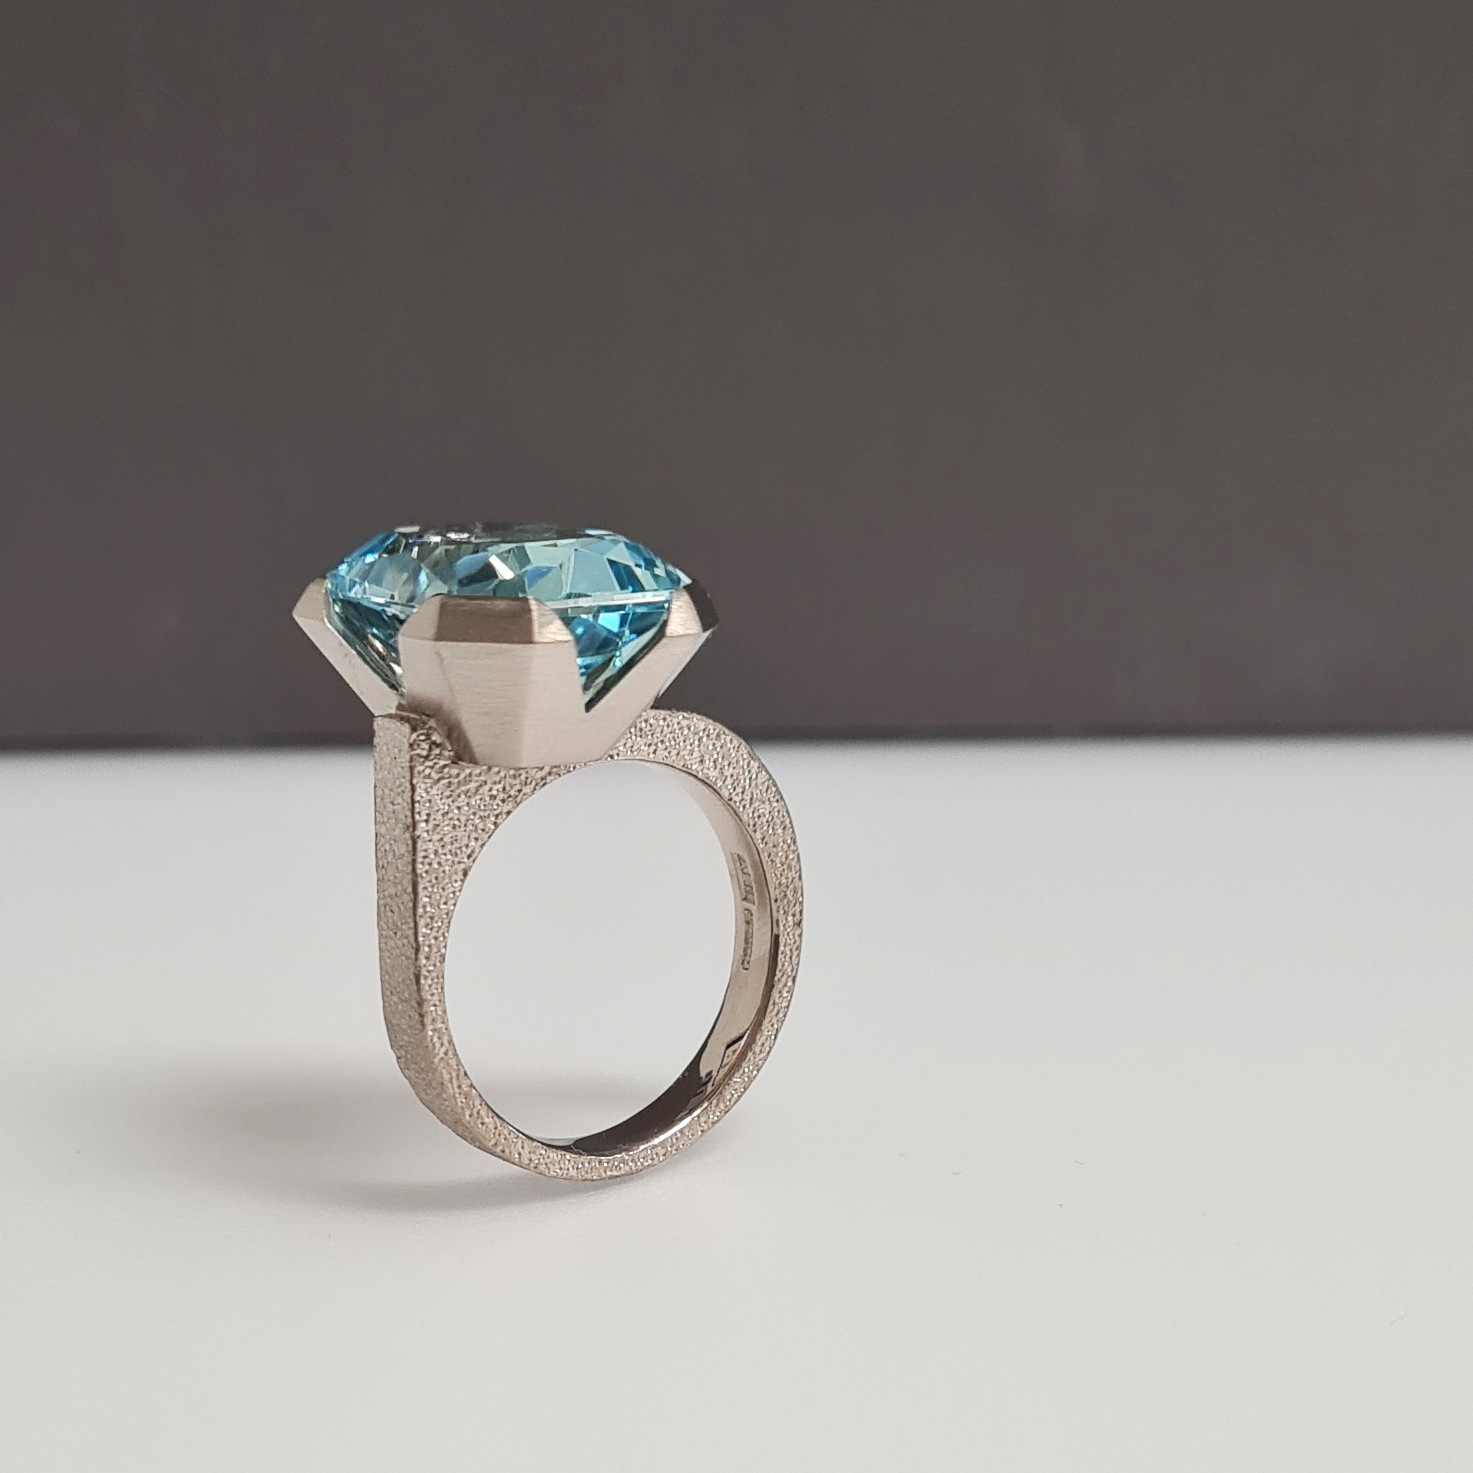 Aquamarine ring with offset stone standing upright with a grey background.